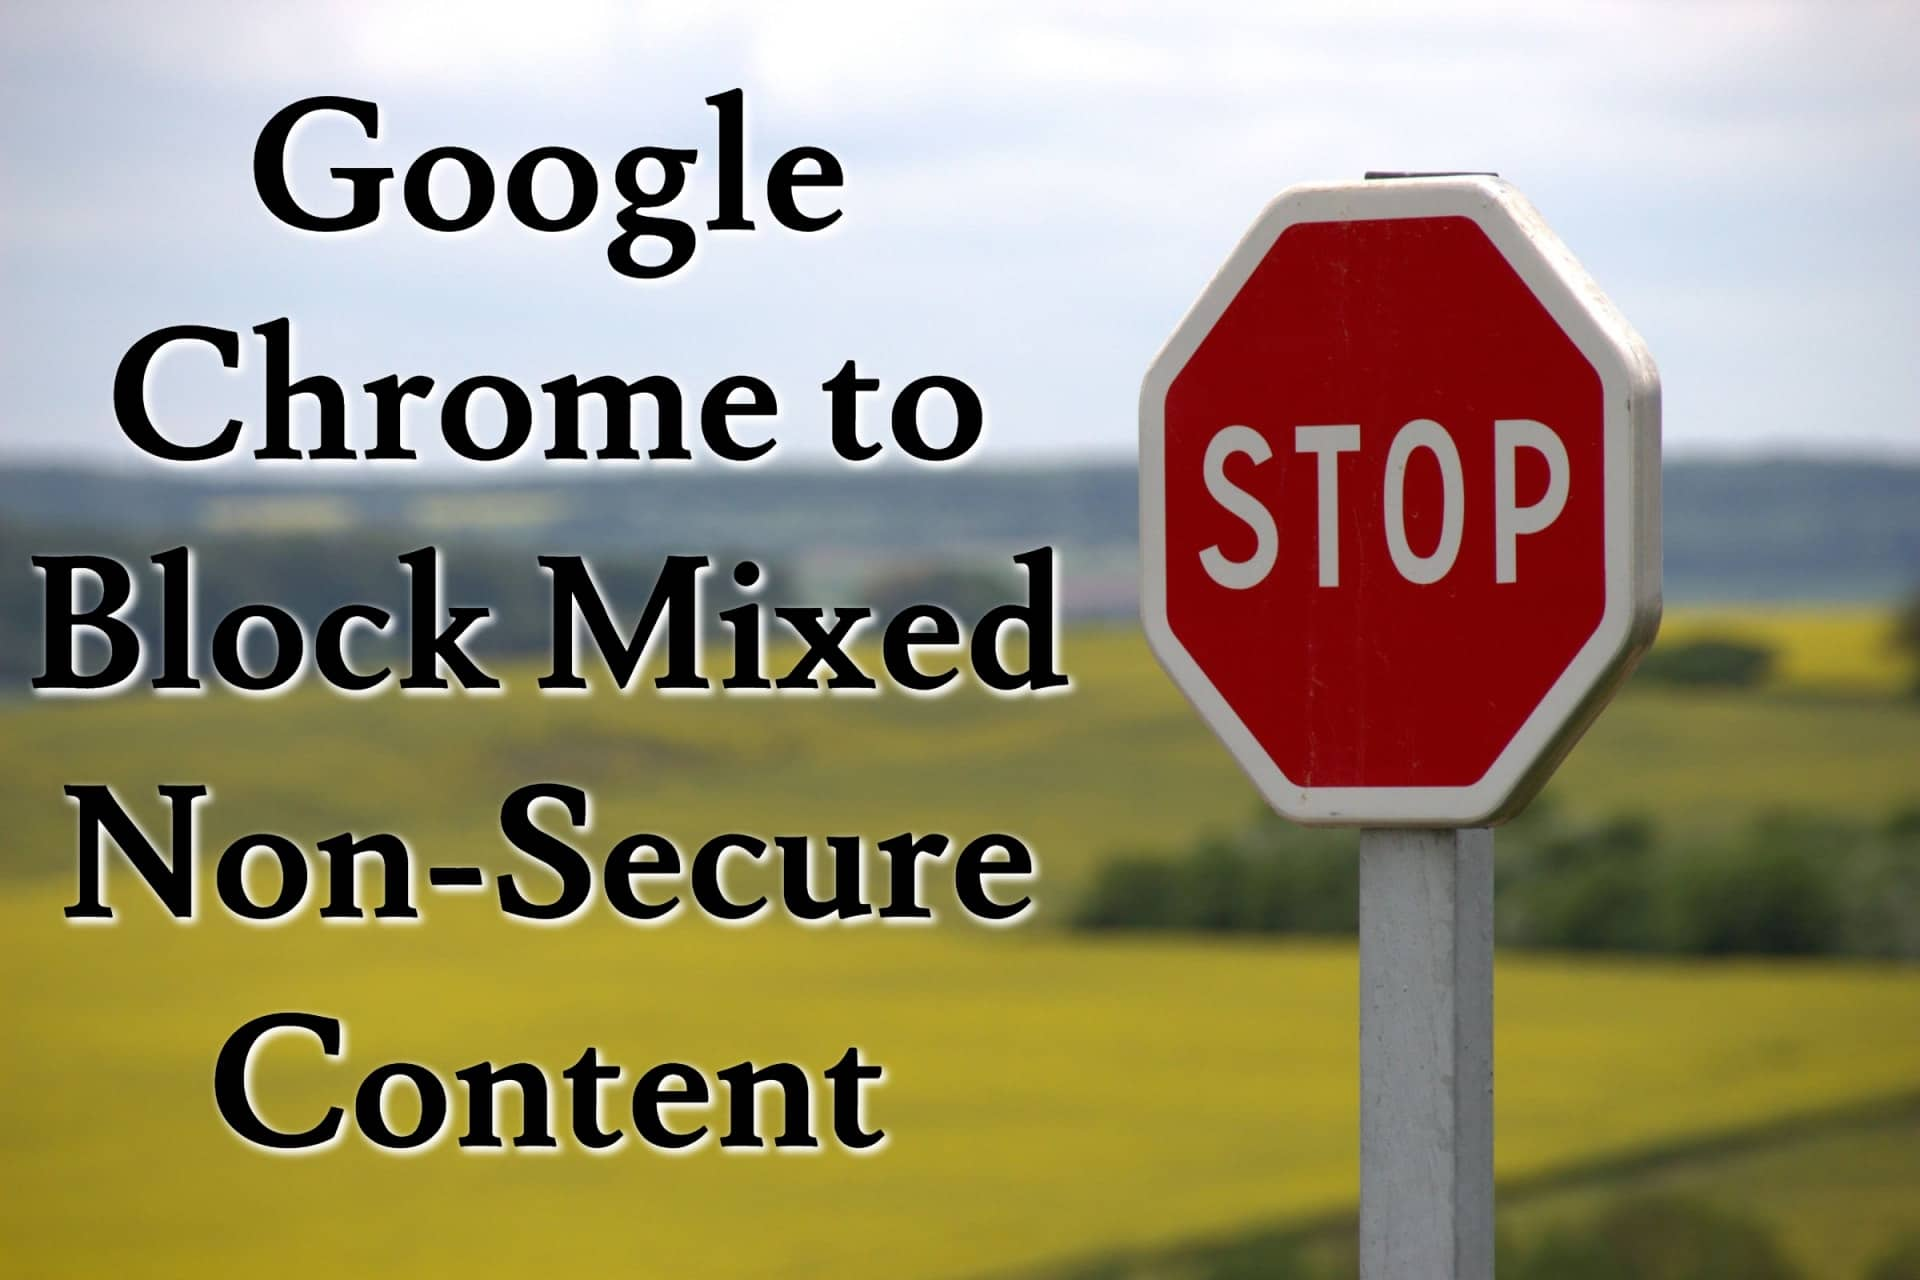 Google Chrome to Block Mixed Non-Secure Content